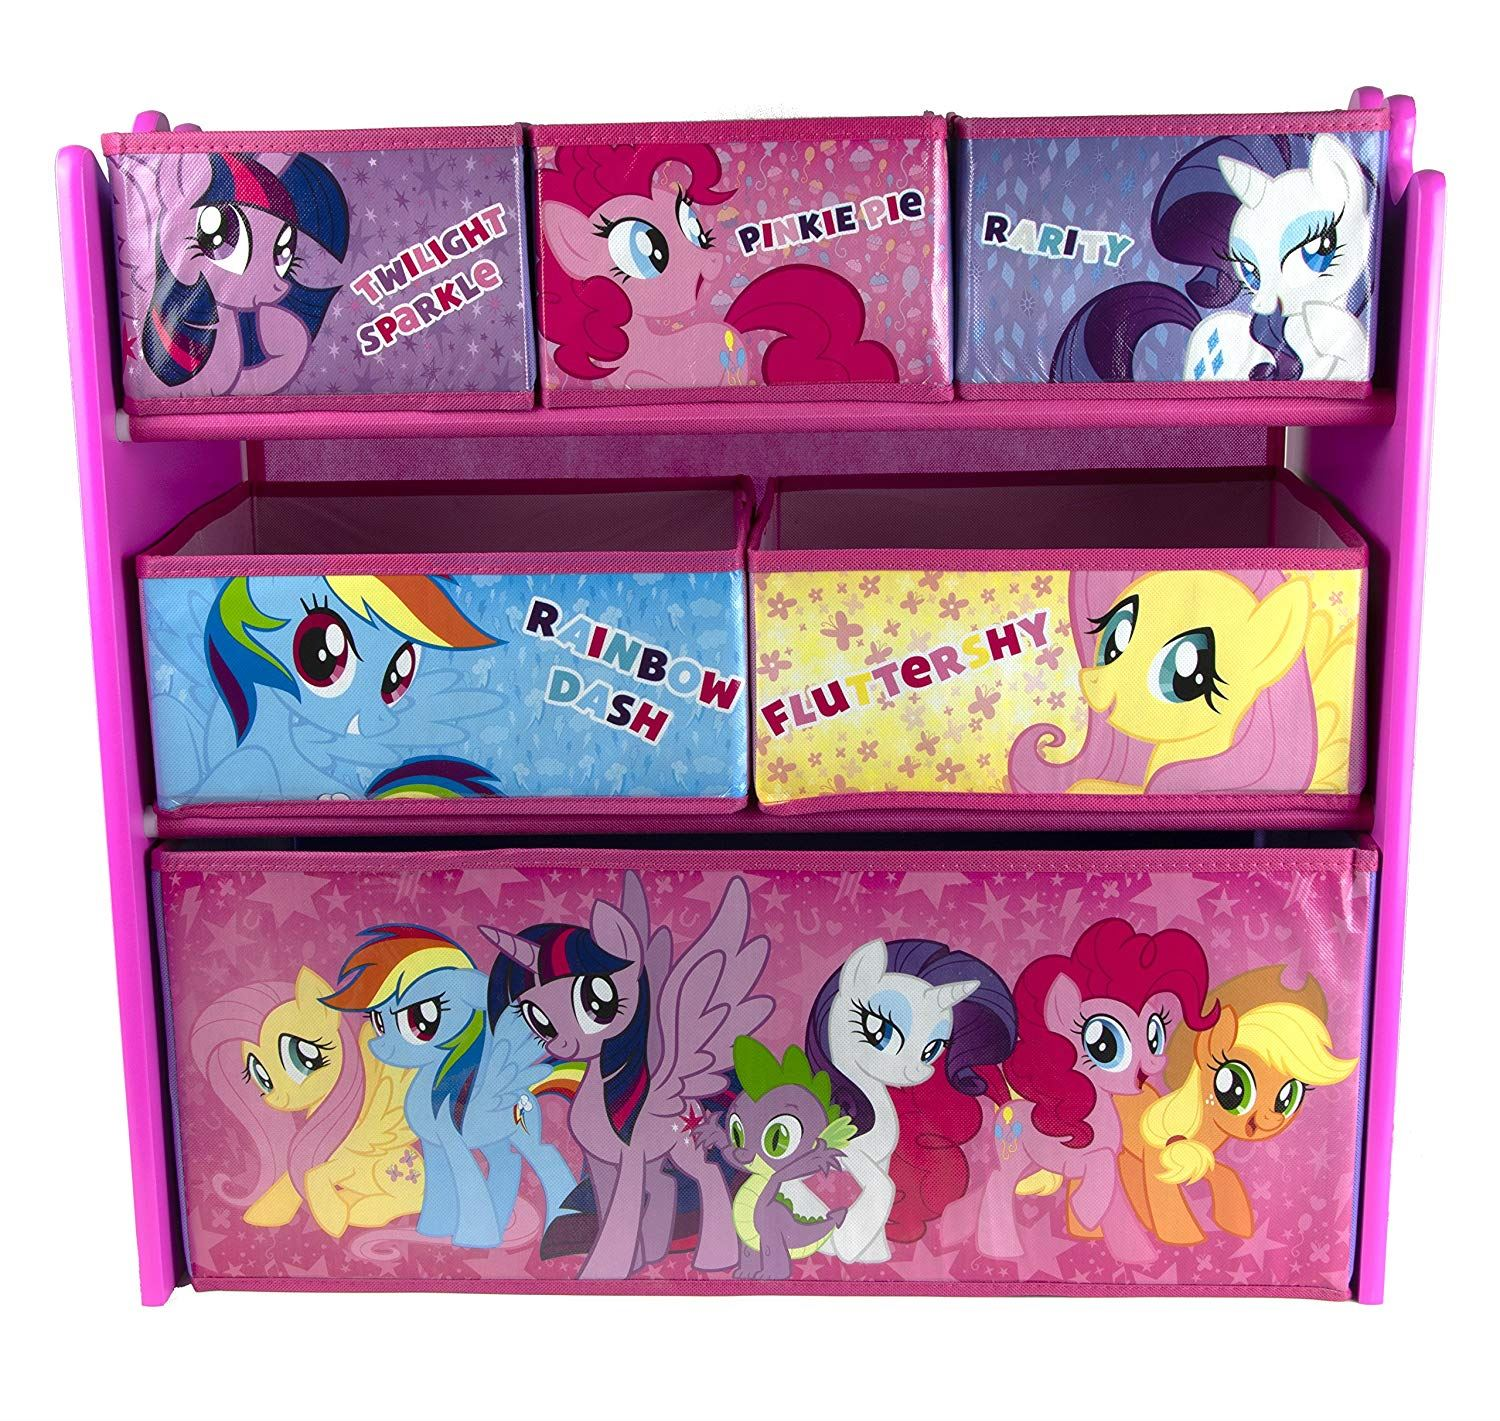 Kids Bedroom Furniture Kids Wooden Toys Online: My Little Pony Kids Wooden Bedroom & Playroom Furniture